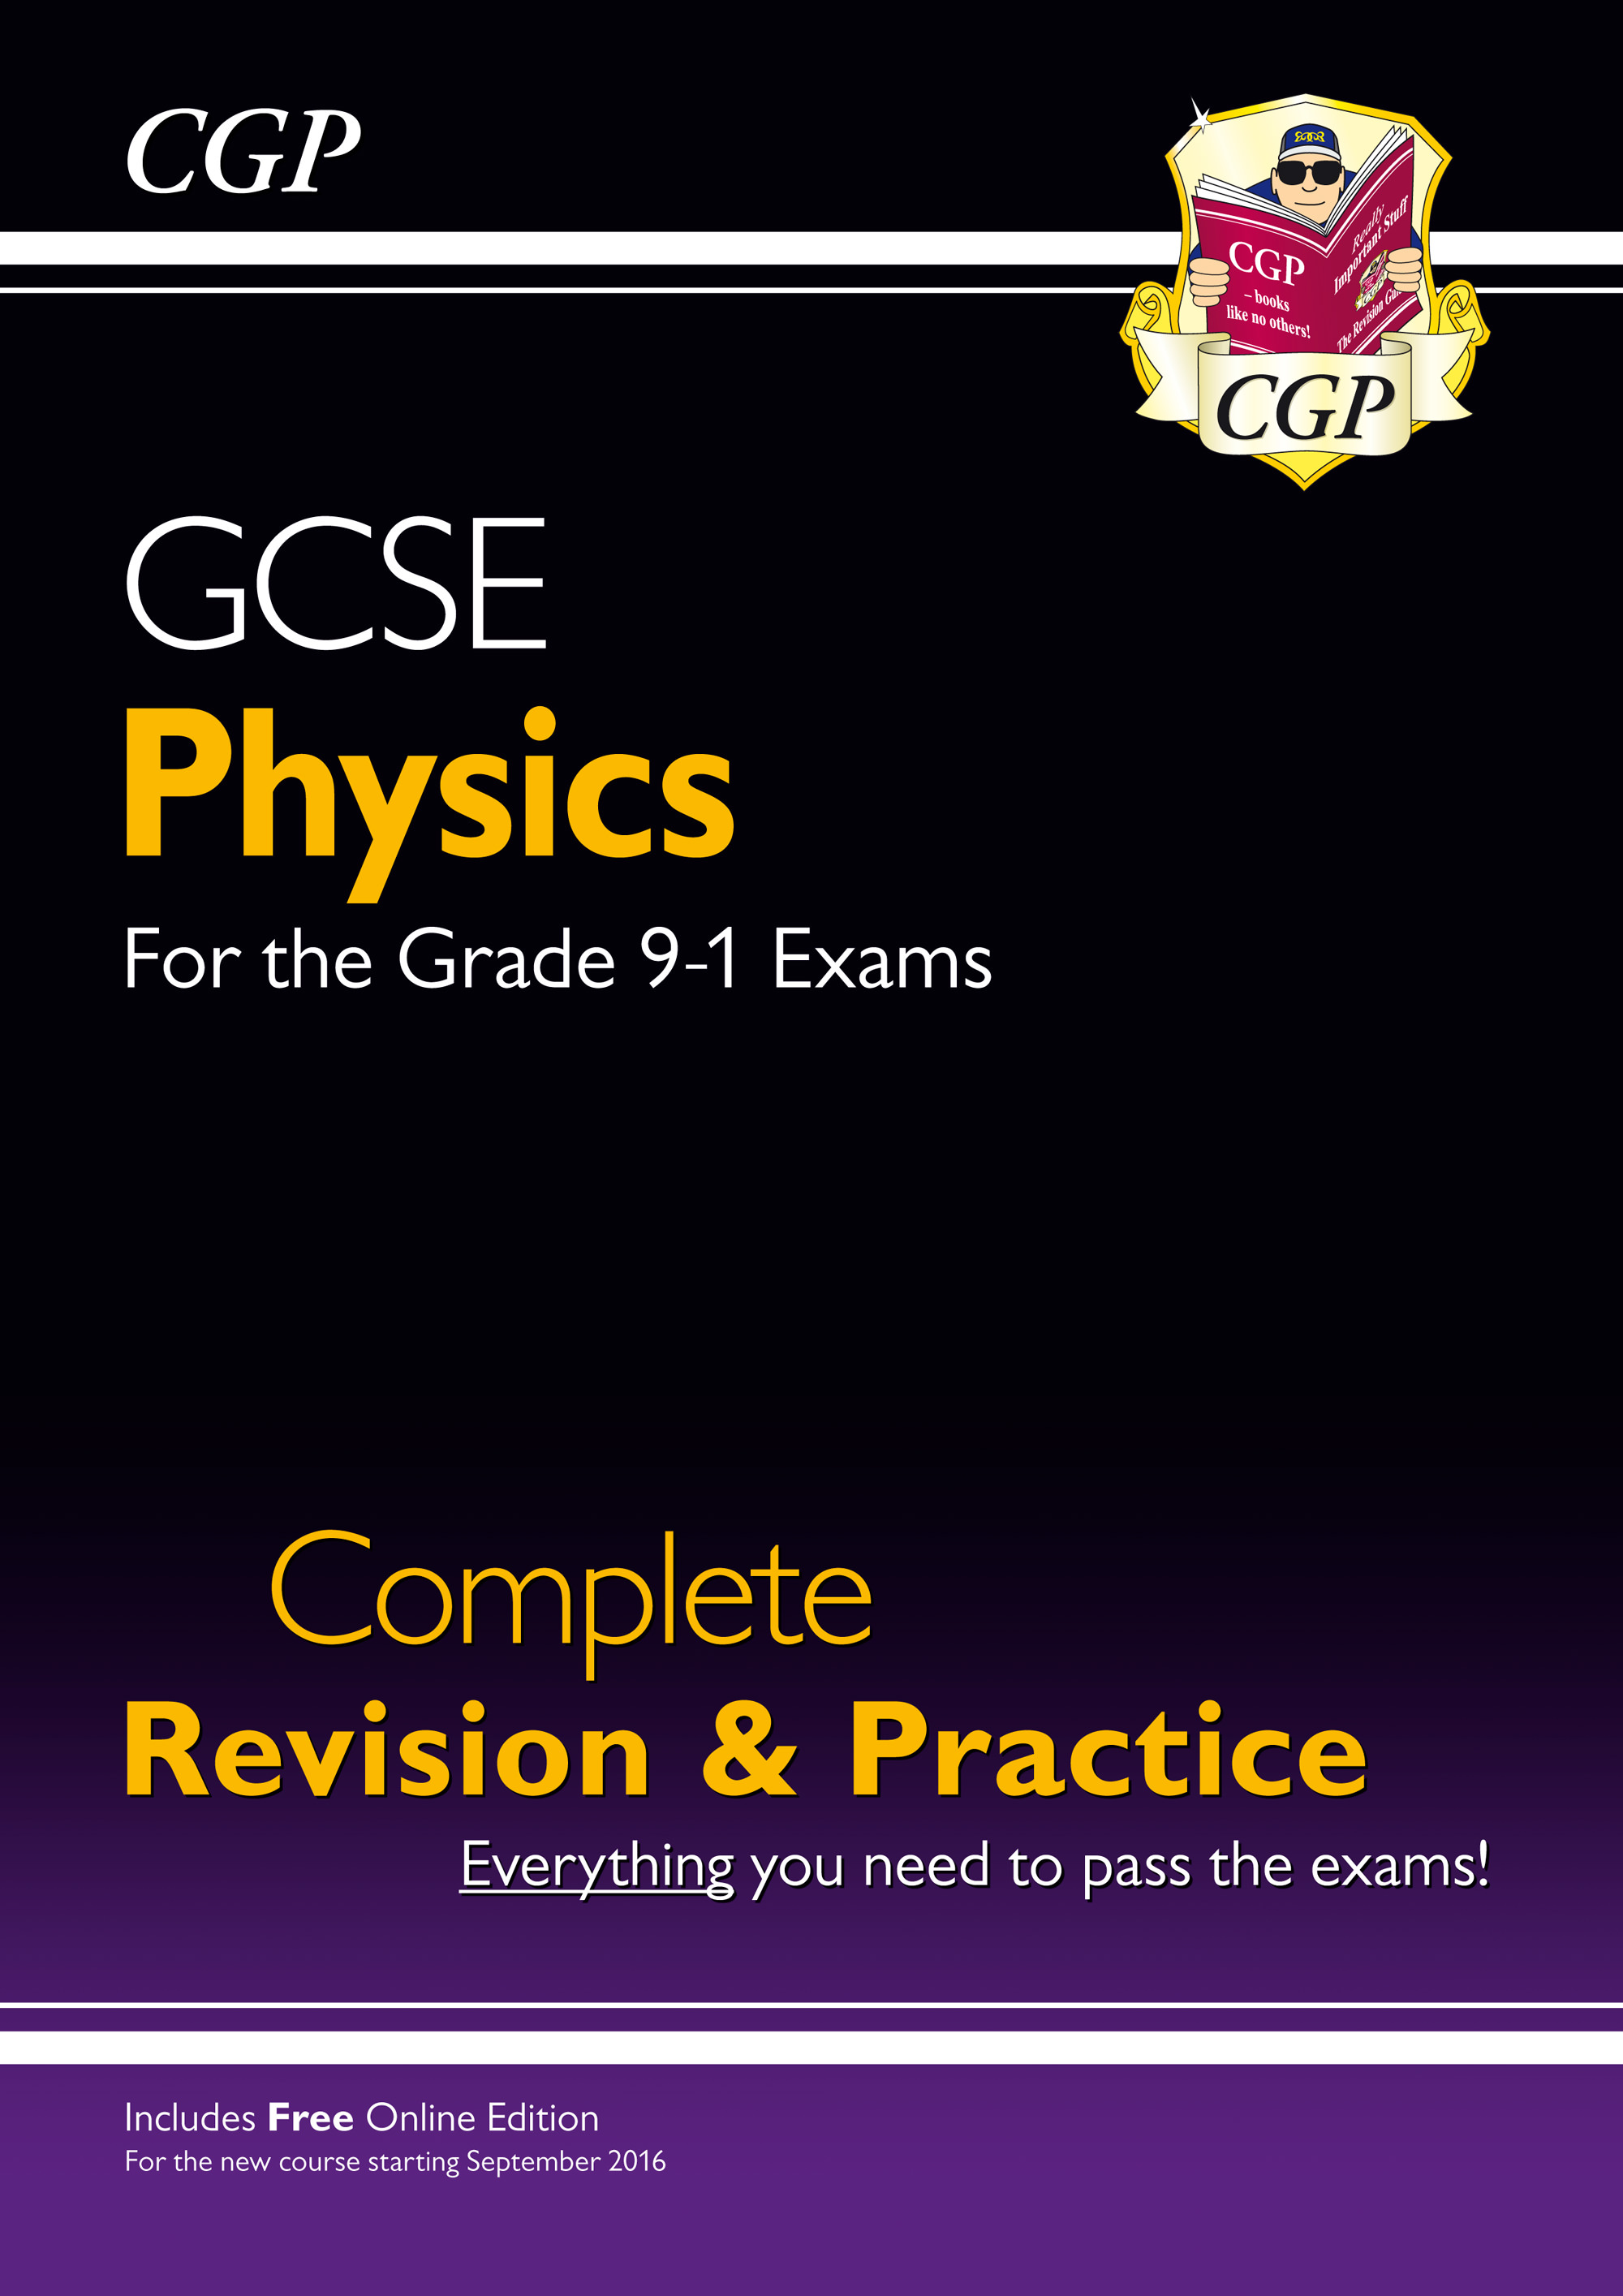 PHS45 - Grade 9-1 GCSE Physics Complete Revision & Practice with Online Edition